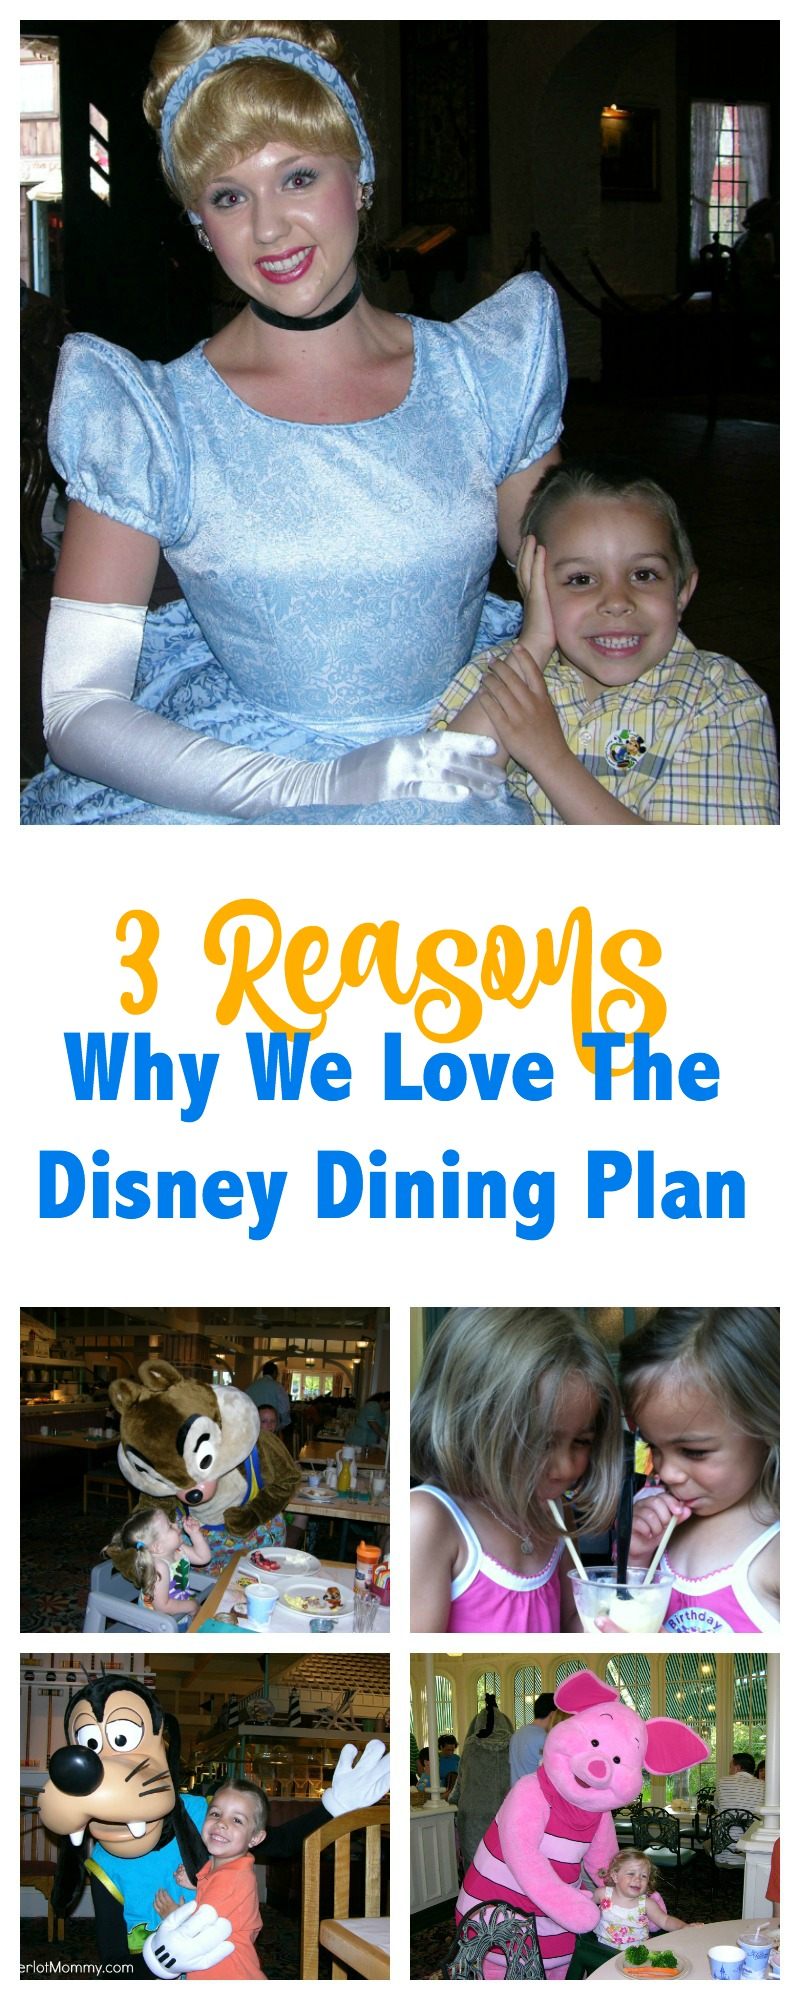 3 Reasons Why We Love The Disney Dining Plan